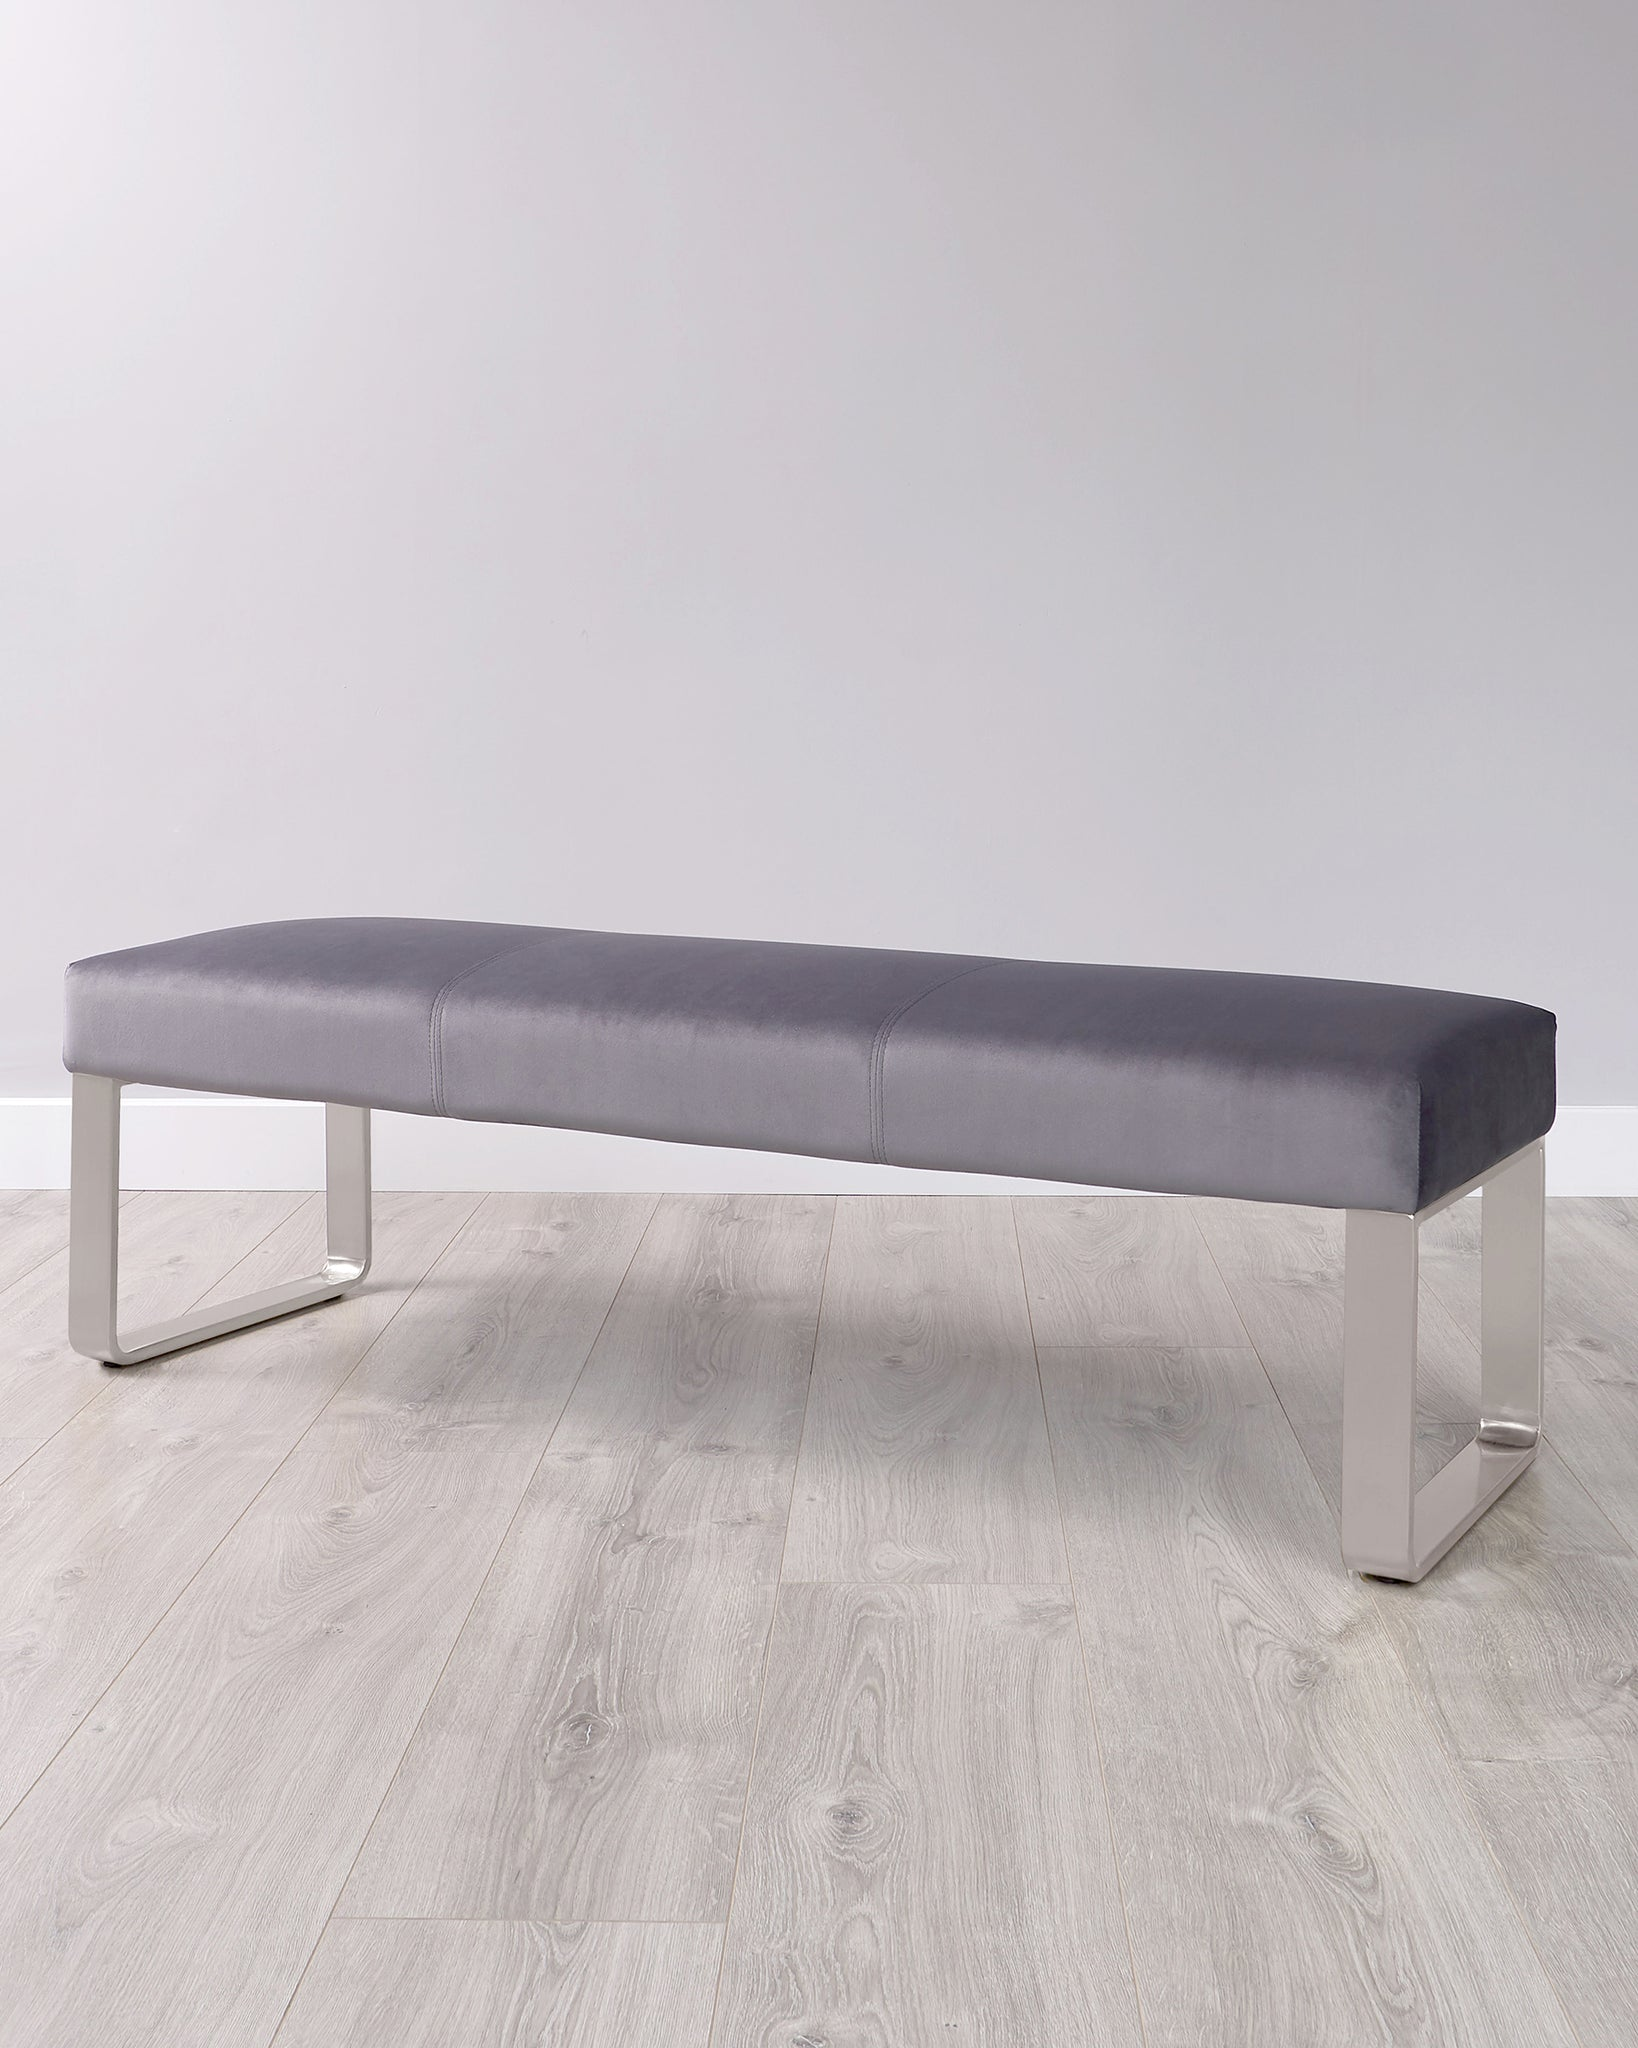 Ophelia 3 Seater Dark Grey Velvet Stainless Steel Bench Without Backrest